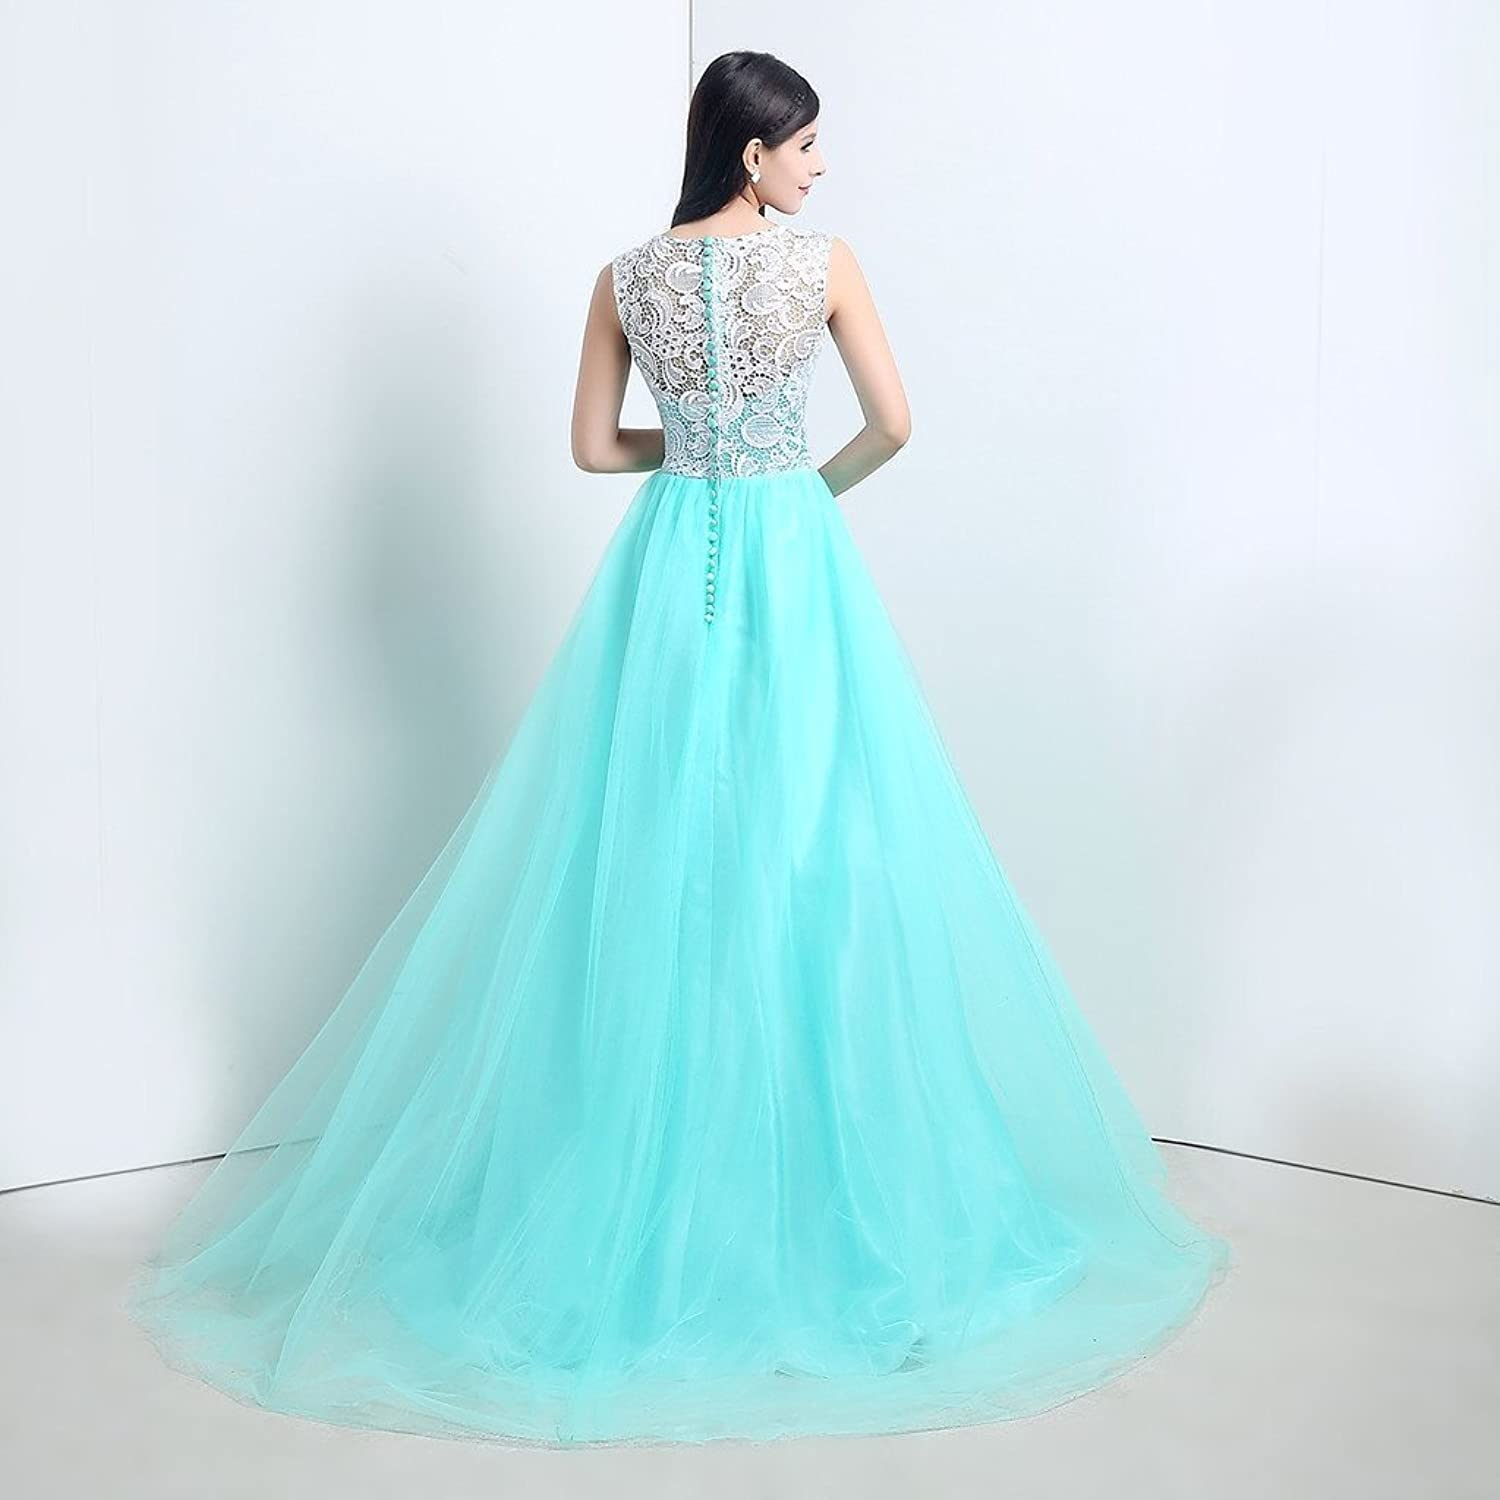 Amazon.com: JoyVany Tulle Party Prom Dresses 2016 Lace Formal ...